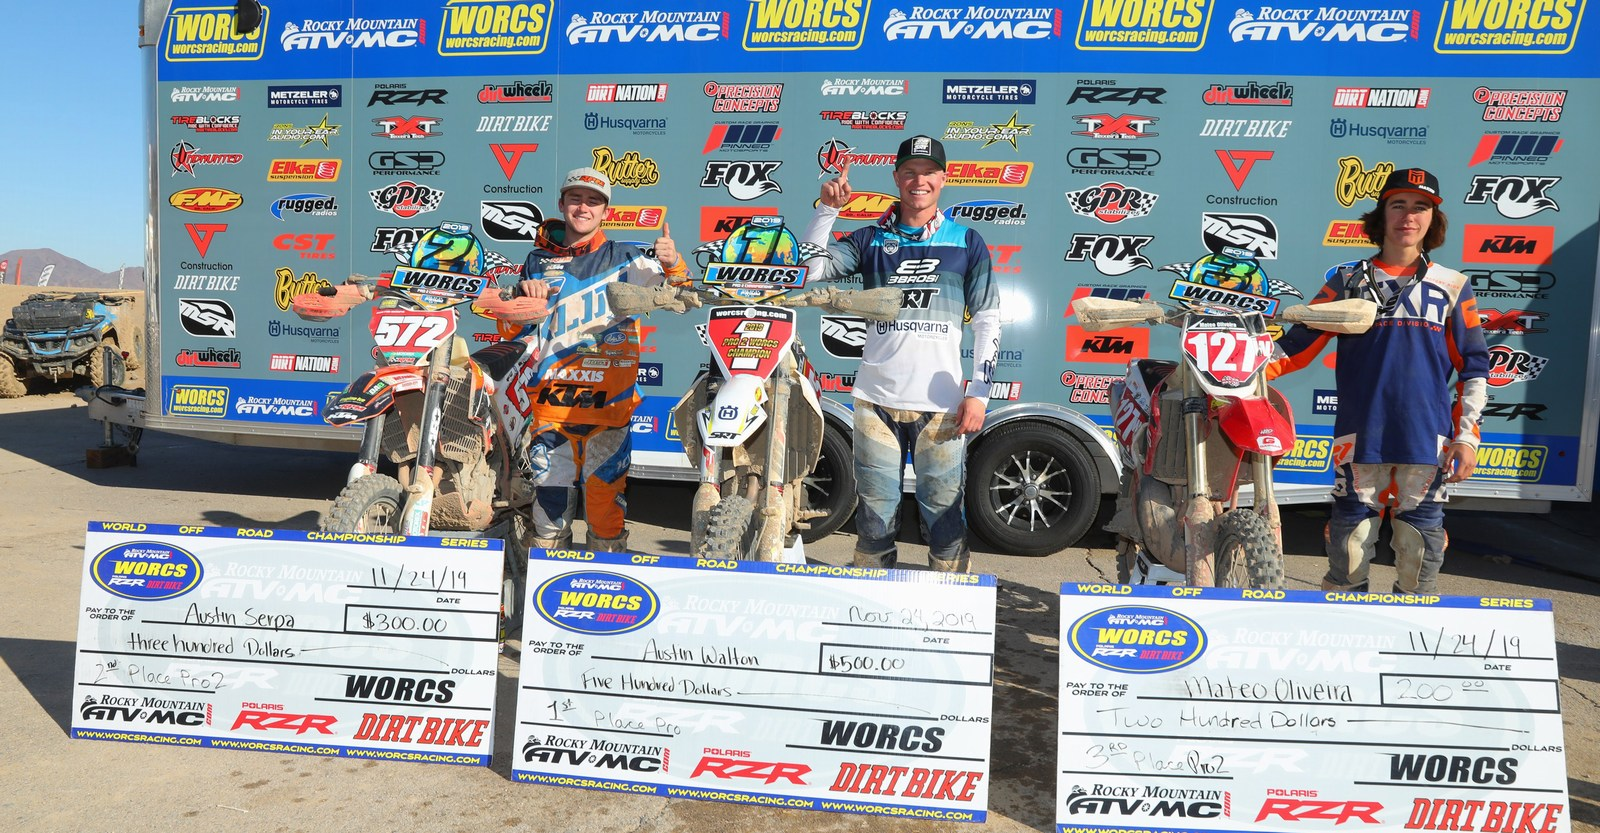 11-podium-pro2-motorcycle-worcs-racing